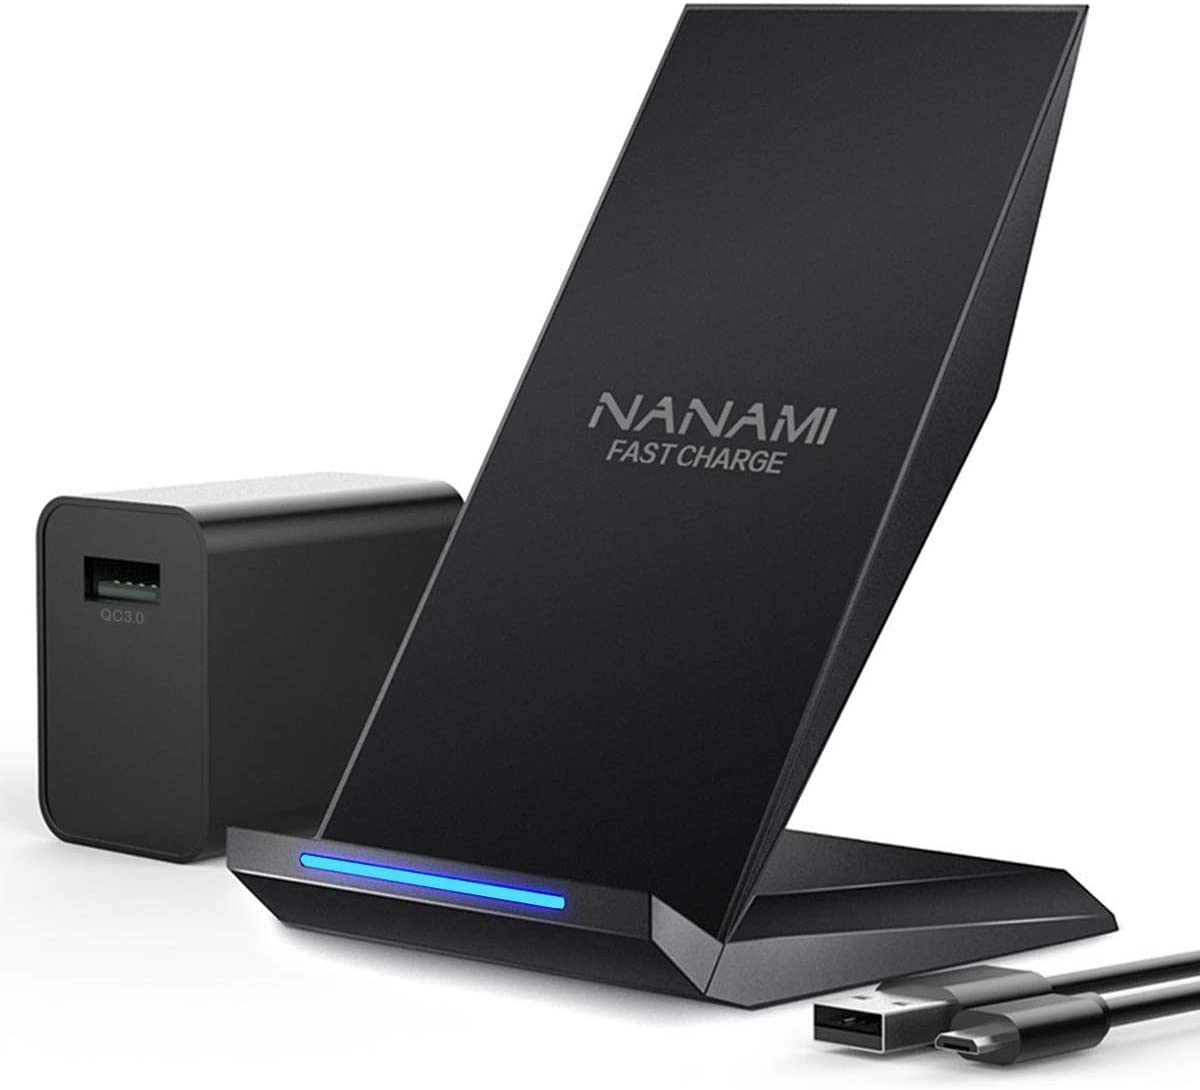 Fast Wireless Charger, NANAMI Qi Certified Wireless Charging Stand [with QC3.0 Adapter] Compatible iPhone 11/11 Pro/11 Pro Max/XR/XS Max/XS/X/8/8 Plus,10W for Samsung Galaxy S10+/S9/S8/S7/Note 10/9/8